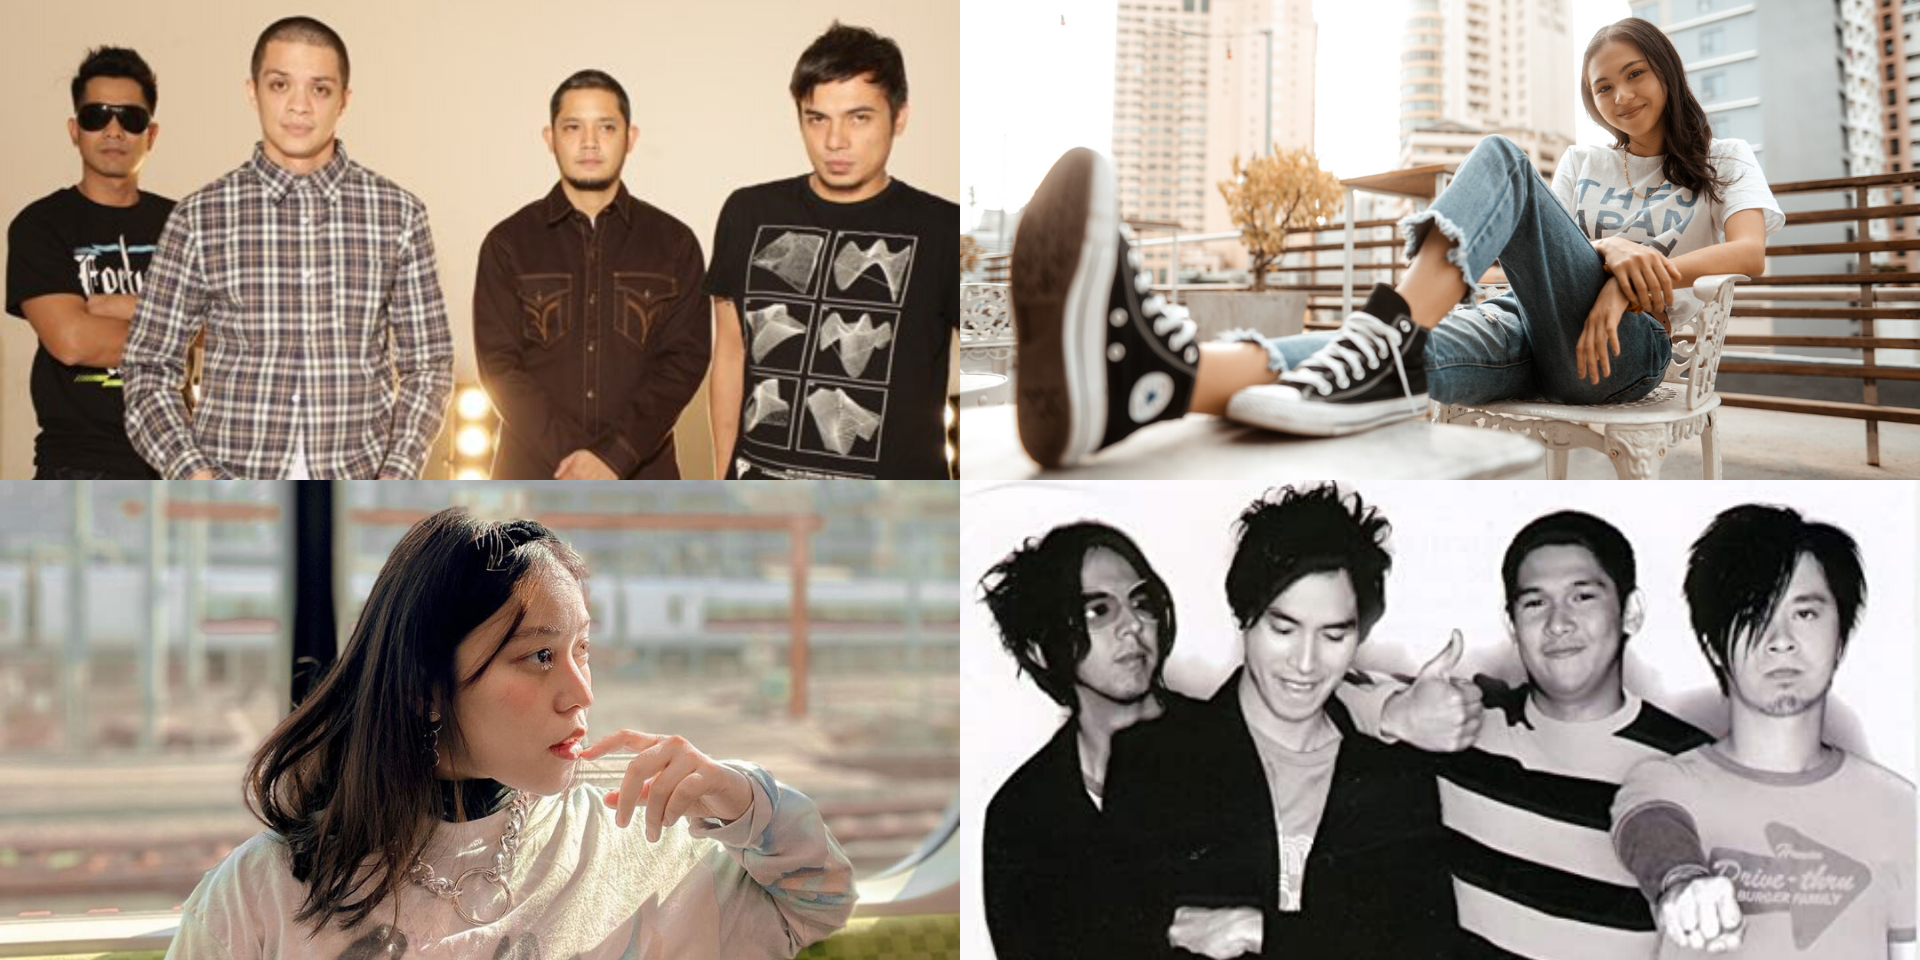 Feeling down? Here's a list of songs from Filipino artists (and causes you can support) to lift your spirits this quarantine season